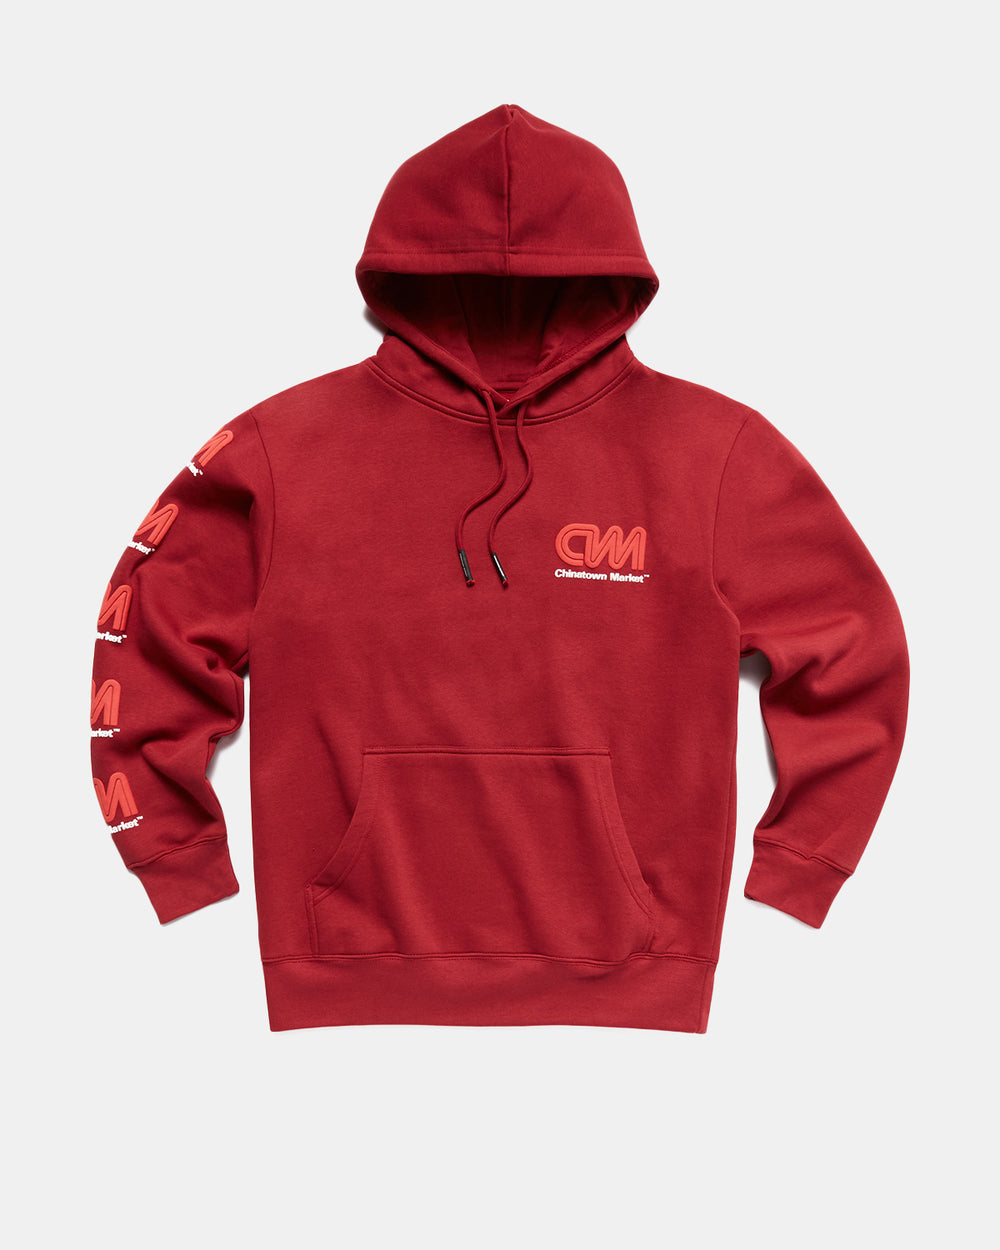 Chinatown Market - Most Trusted Hoodie (Red)